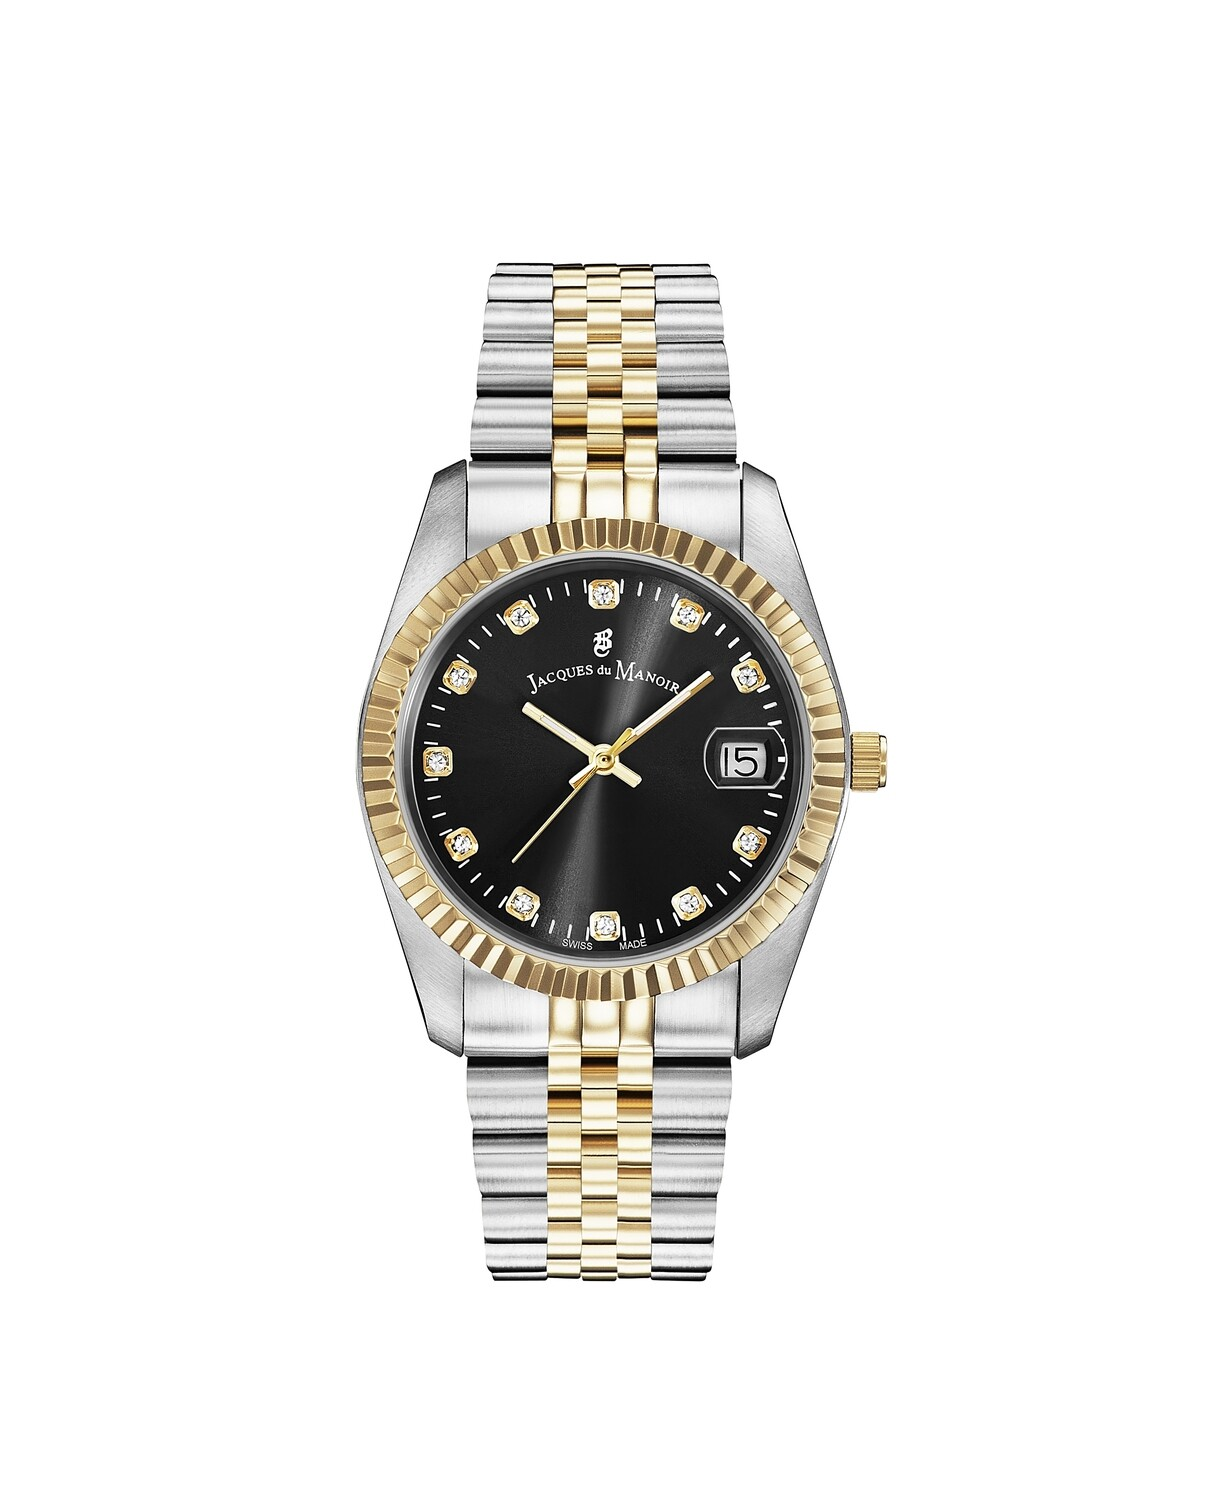 Inspiration SS IPGold Two Tone case, BLACK Dial, SS IPGold Two Tone Bracelet, 36.0 mm